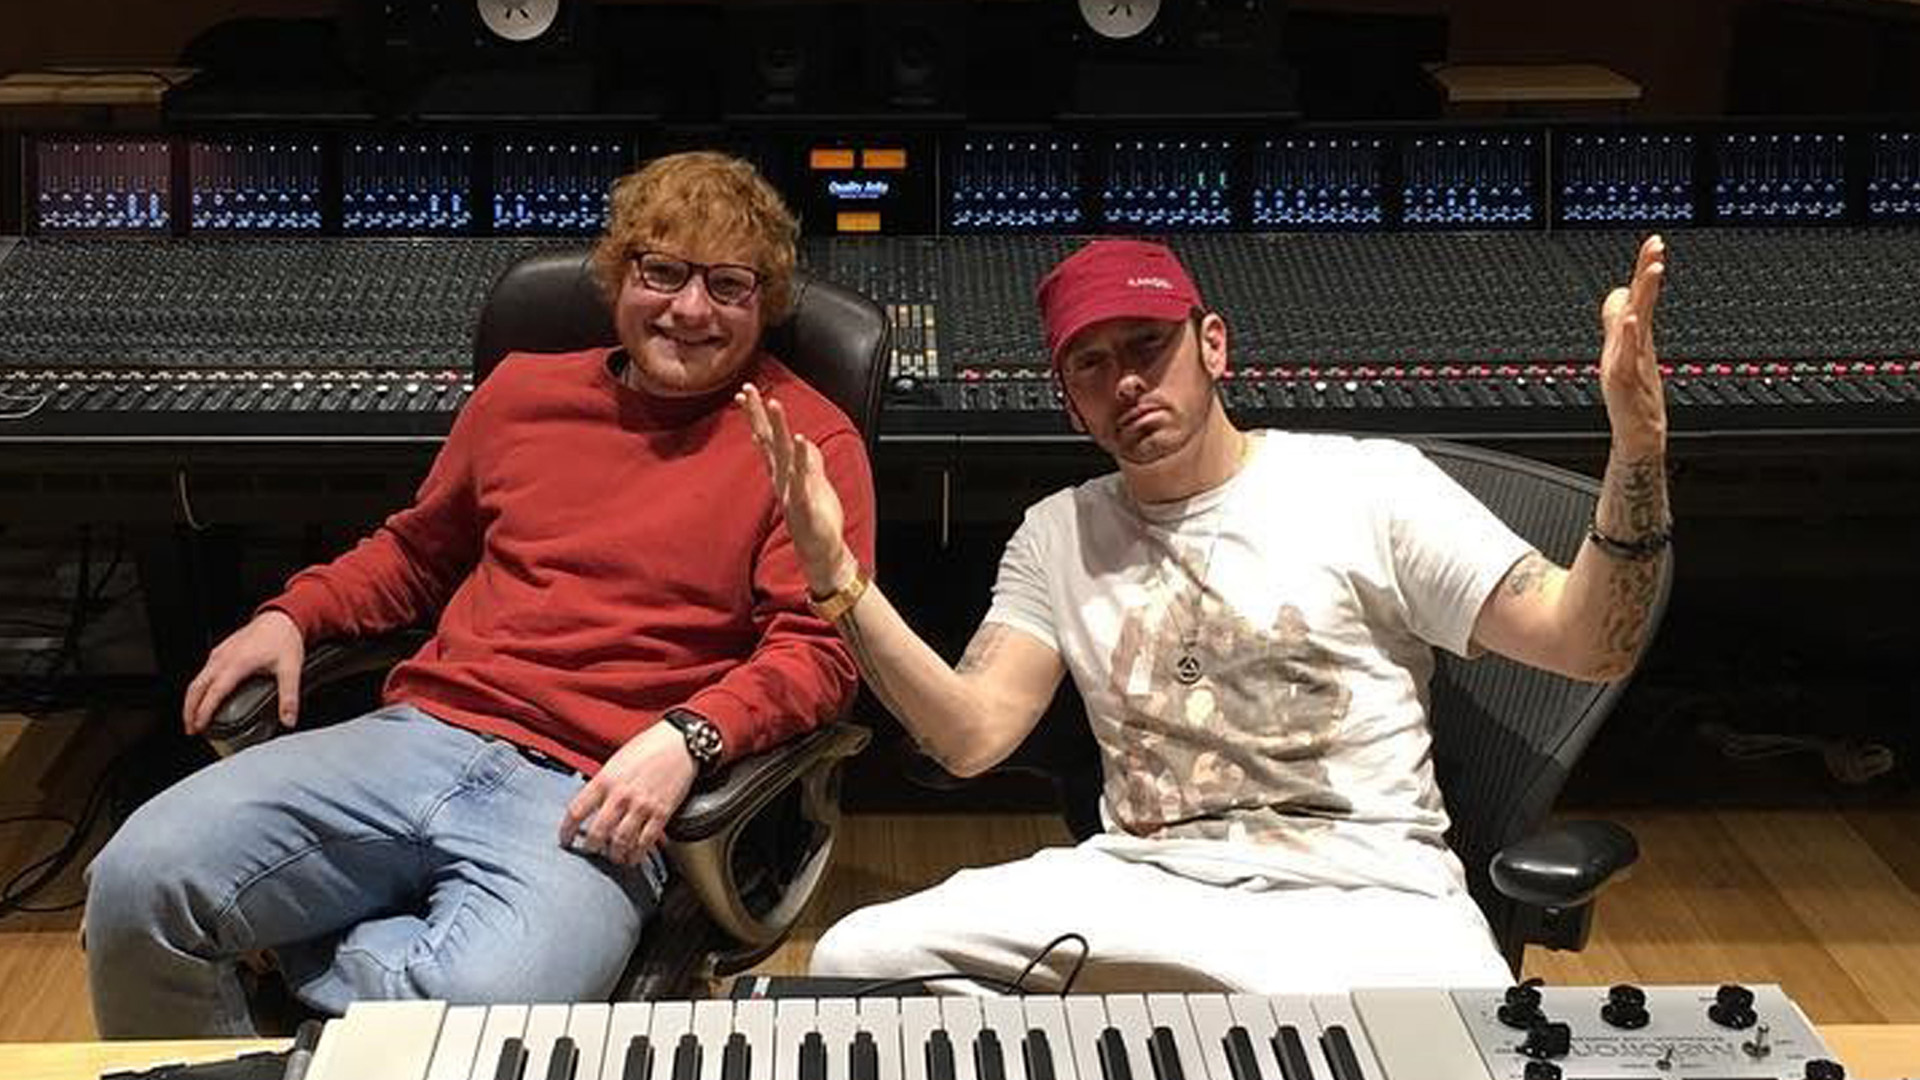 2017.12.13 - Ed Sheeran and Eminem epro HQ